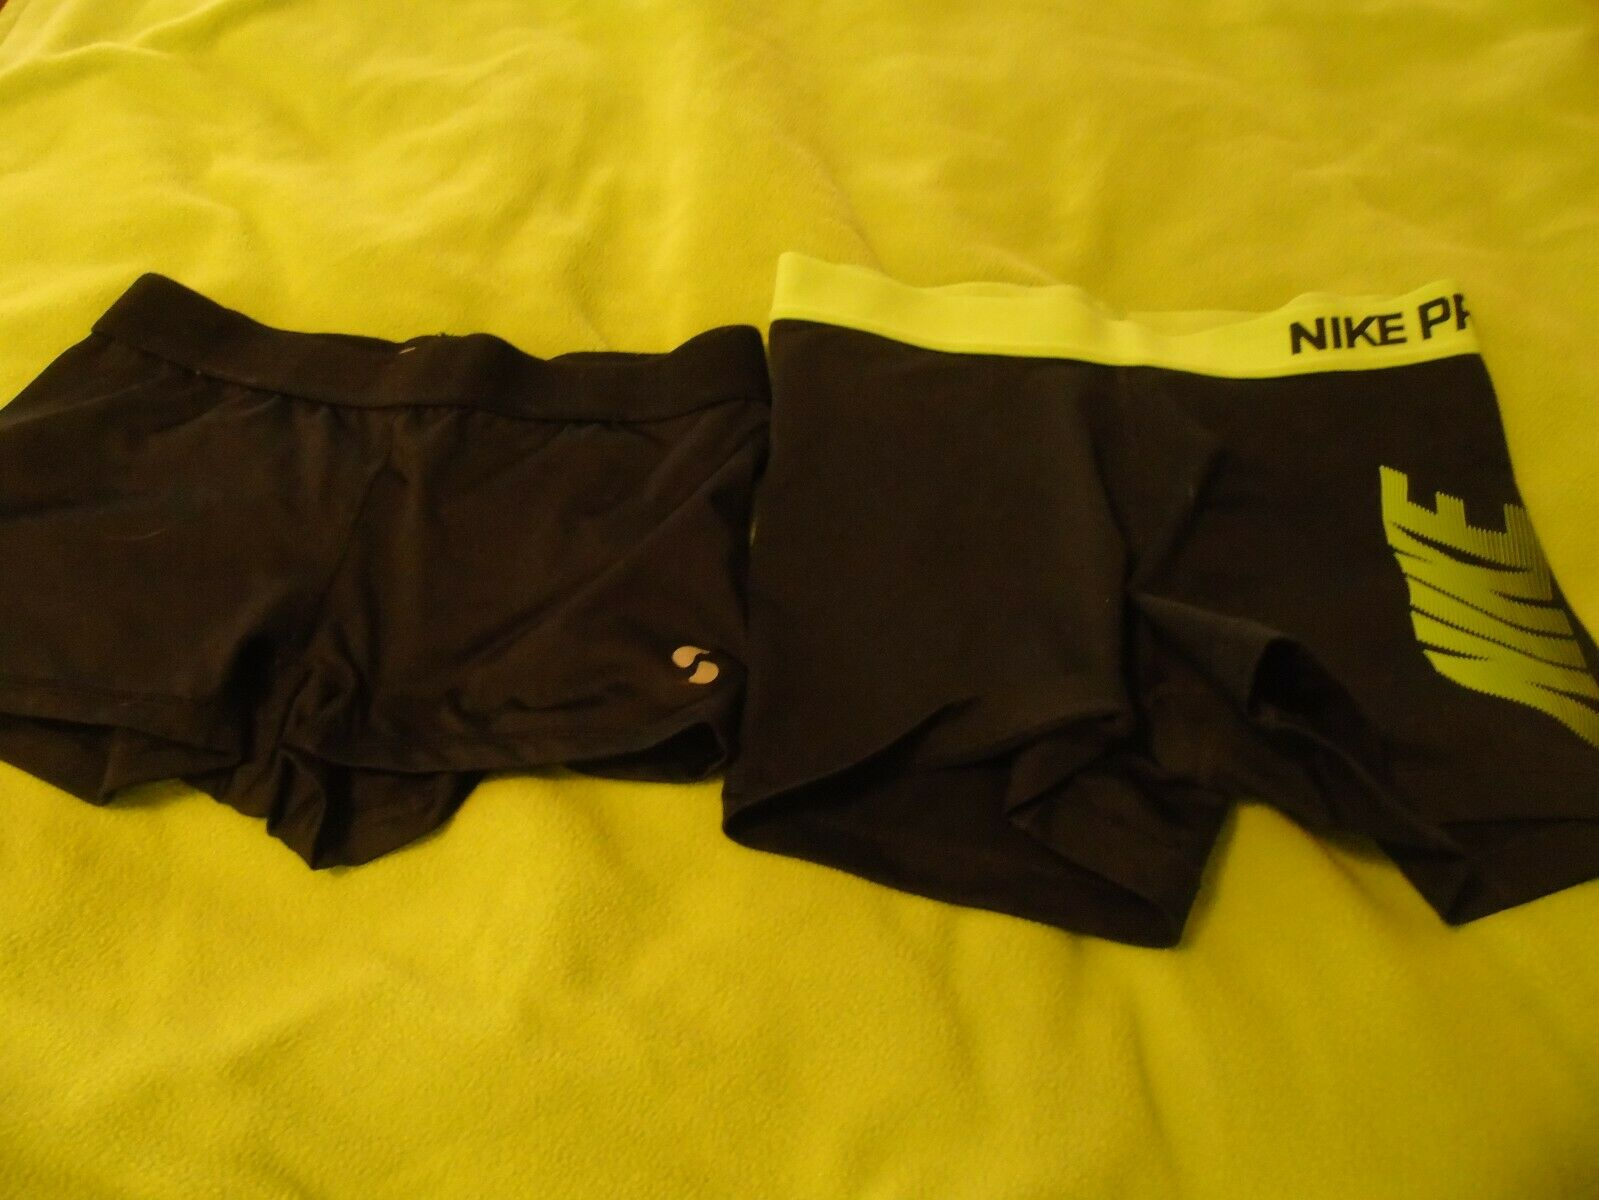 Womens Spandex/compression Shorts Sz Med Nike And Soffe Dry EUC - $11.00